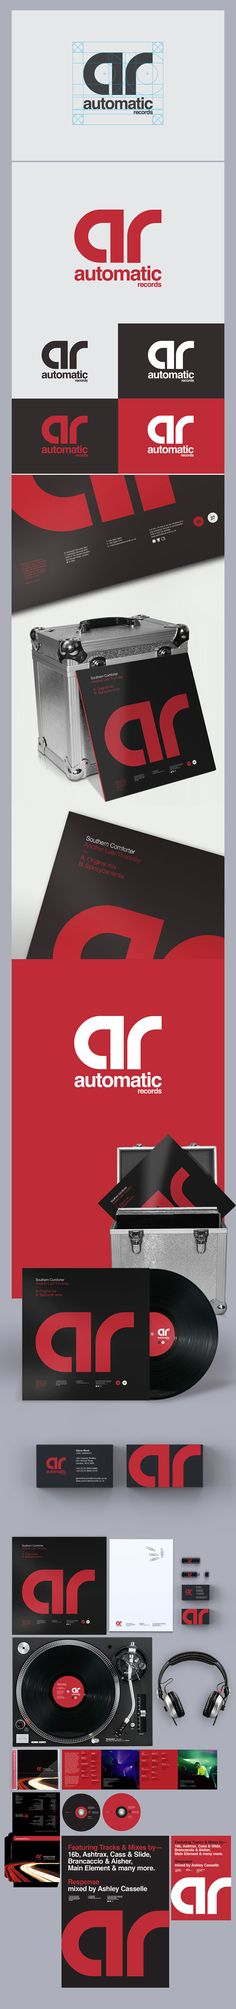 Automatic Records Brand Refresh by Alex Townsend, via Behance